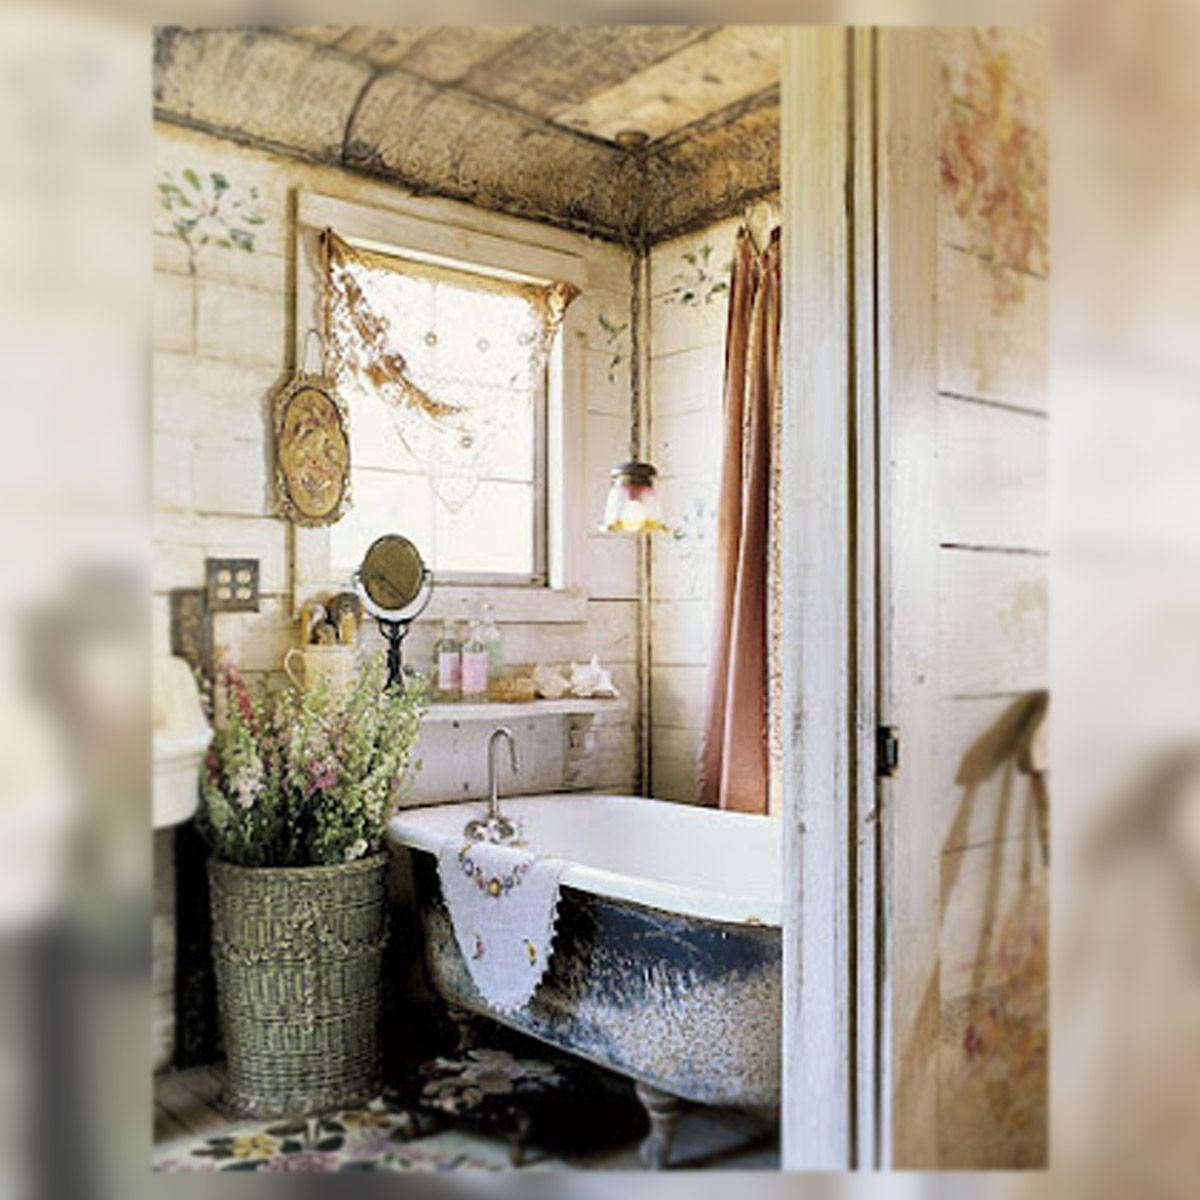 ... VINTAGE- THE VINTAGE STORE: Baños Shabby.. Bathrooms Shabby Chic